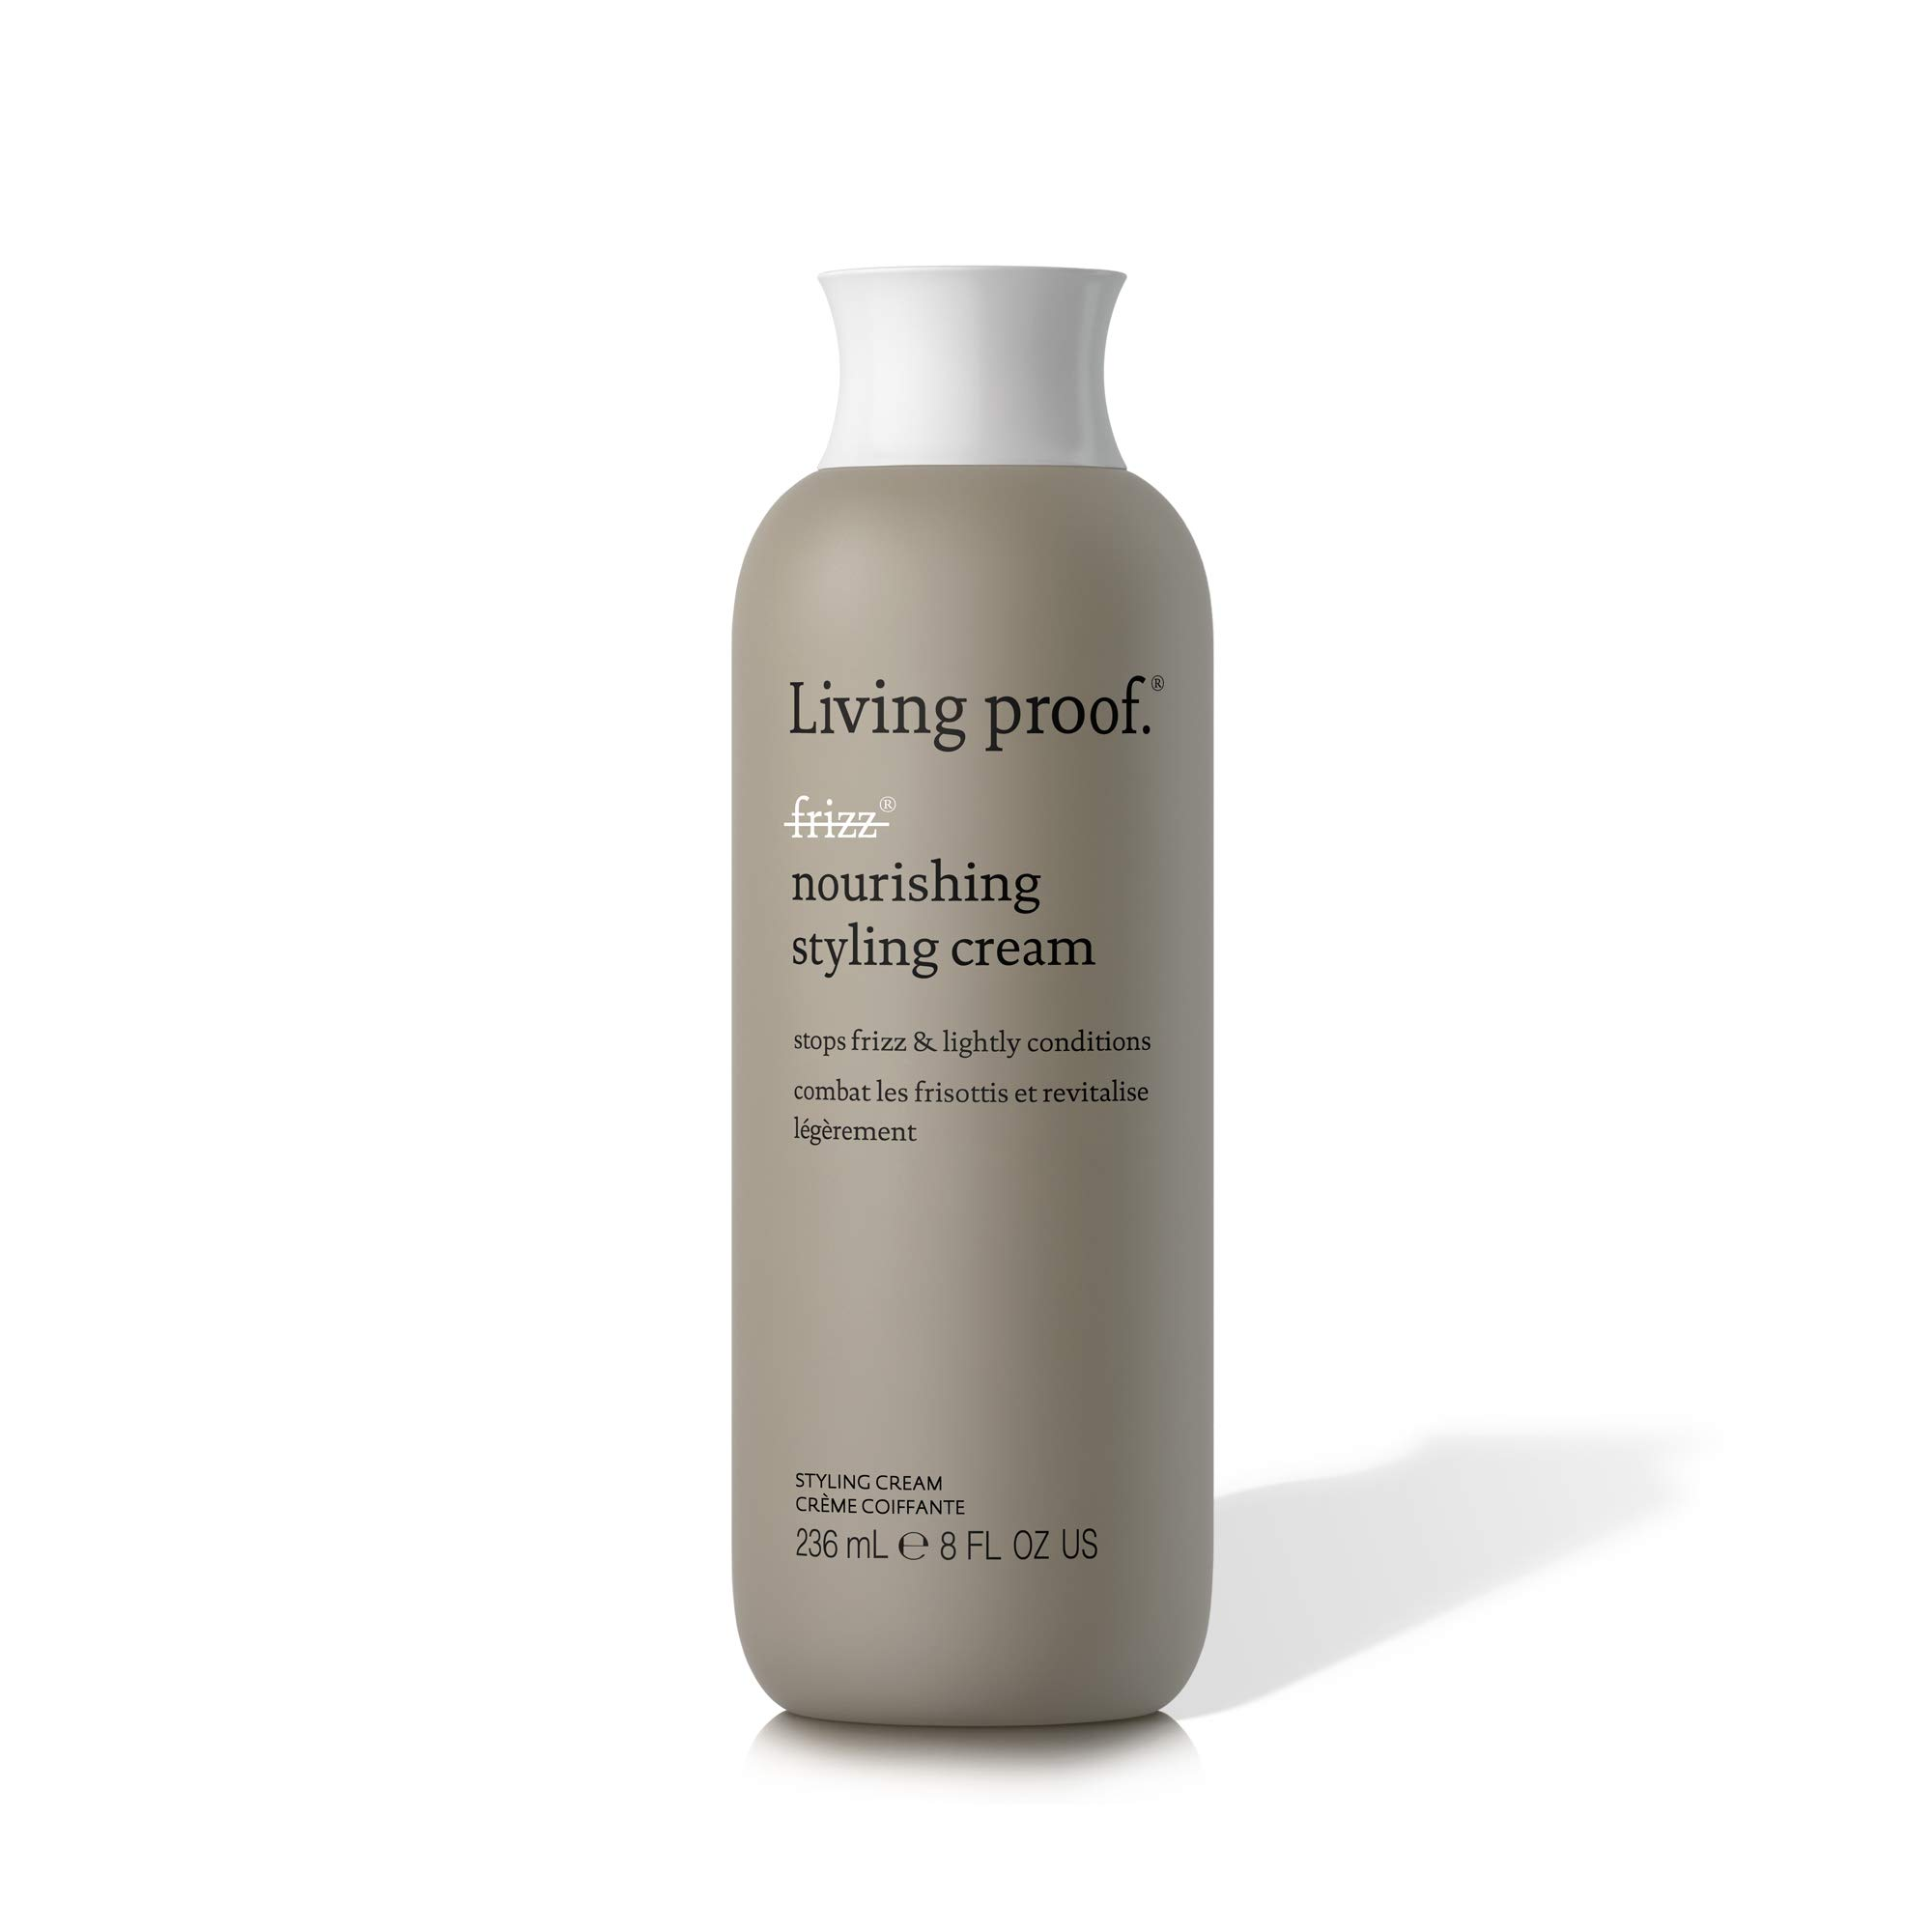 Living Proof No Frizz Nourishing Styling Cream, 8 oz by Living Proof